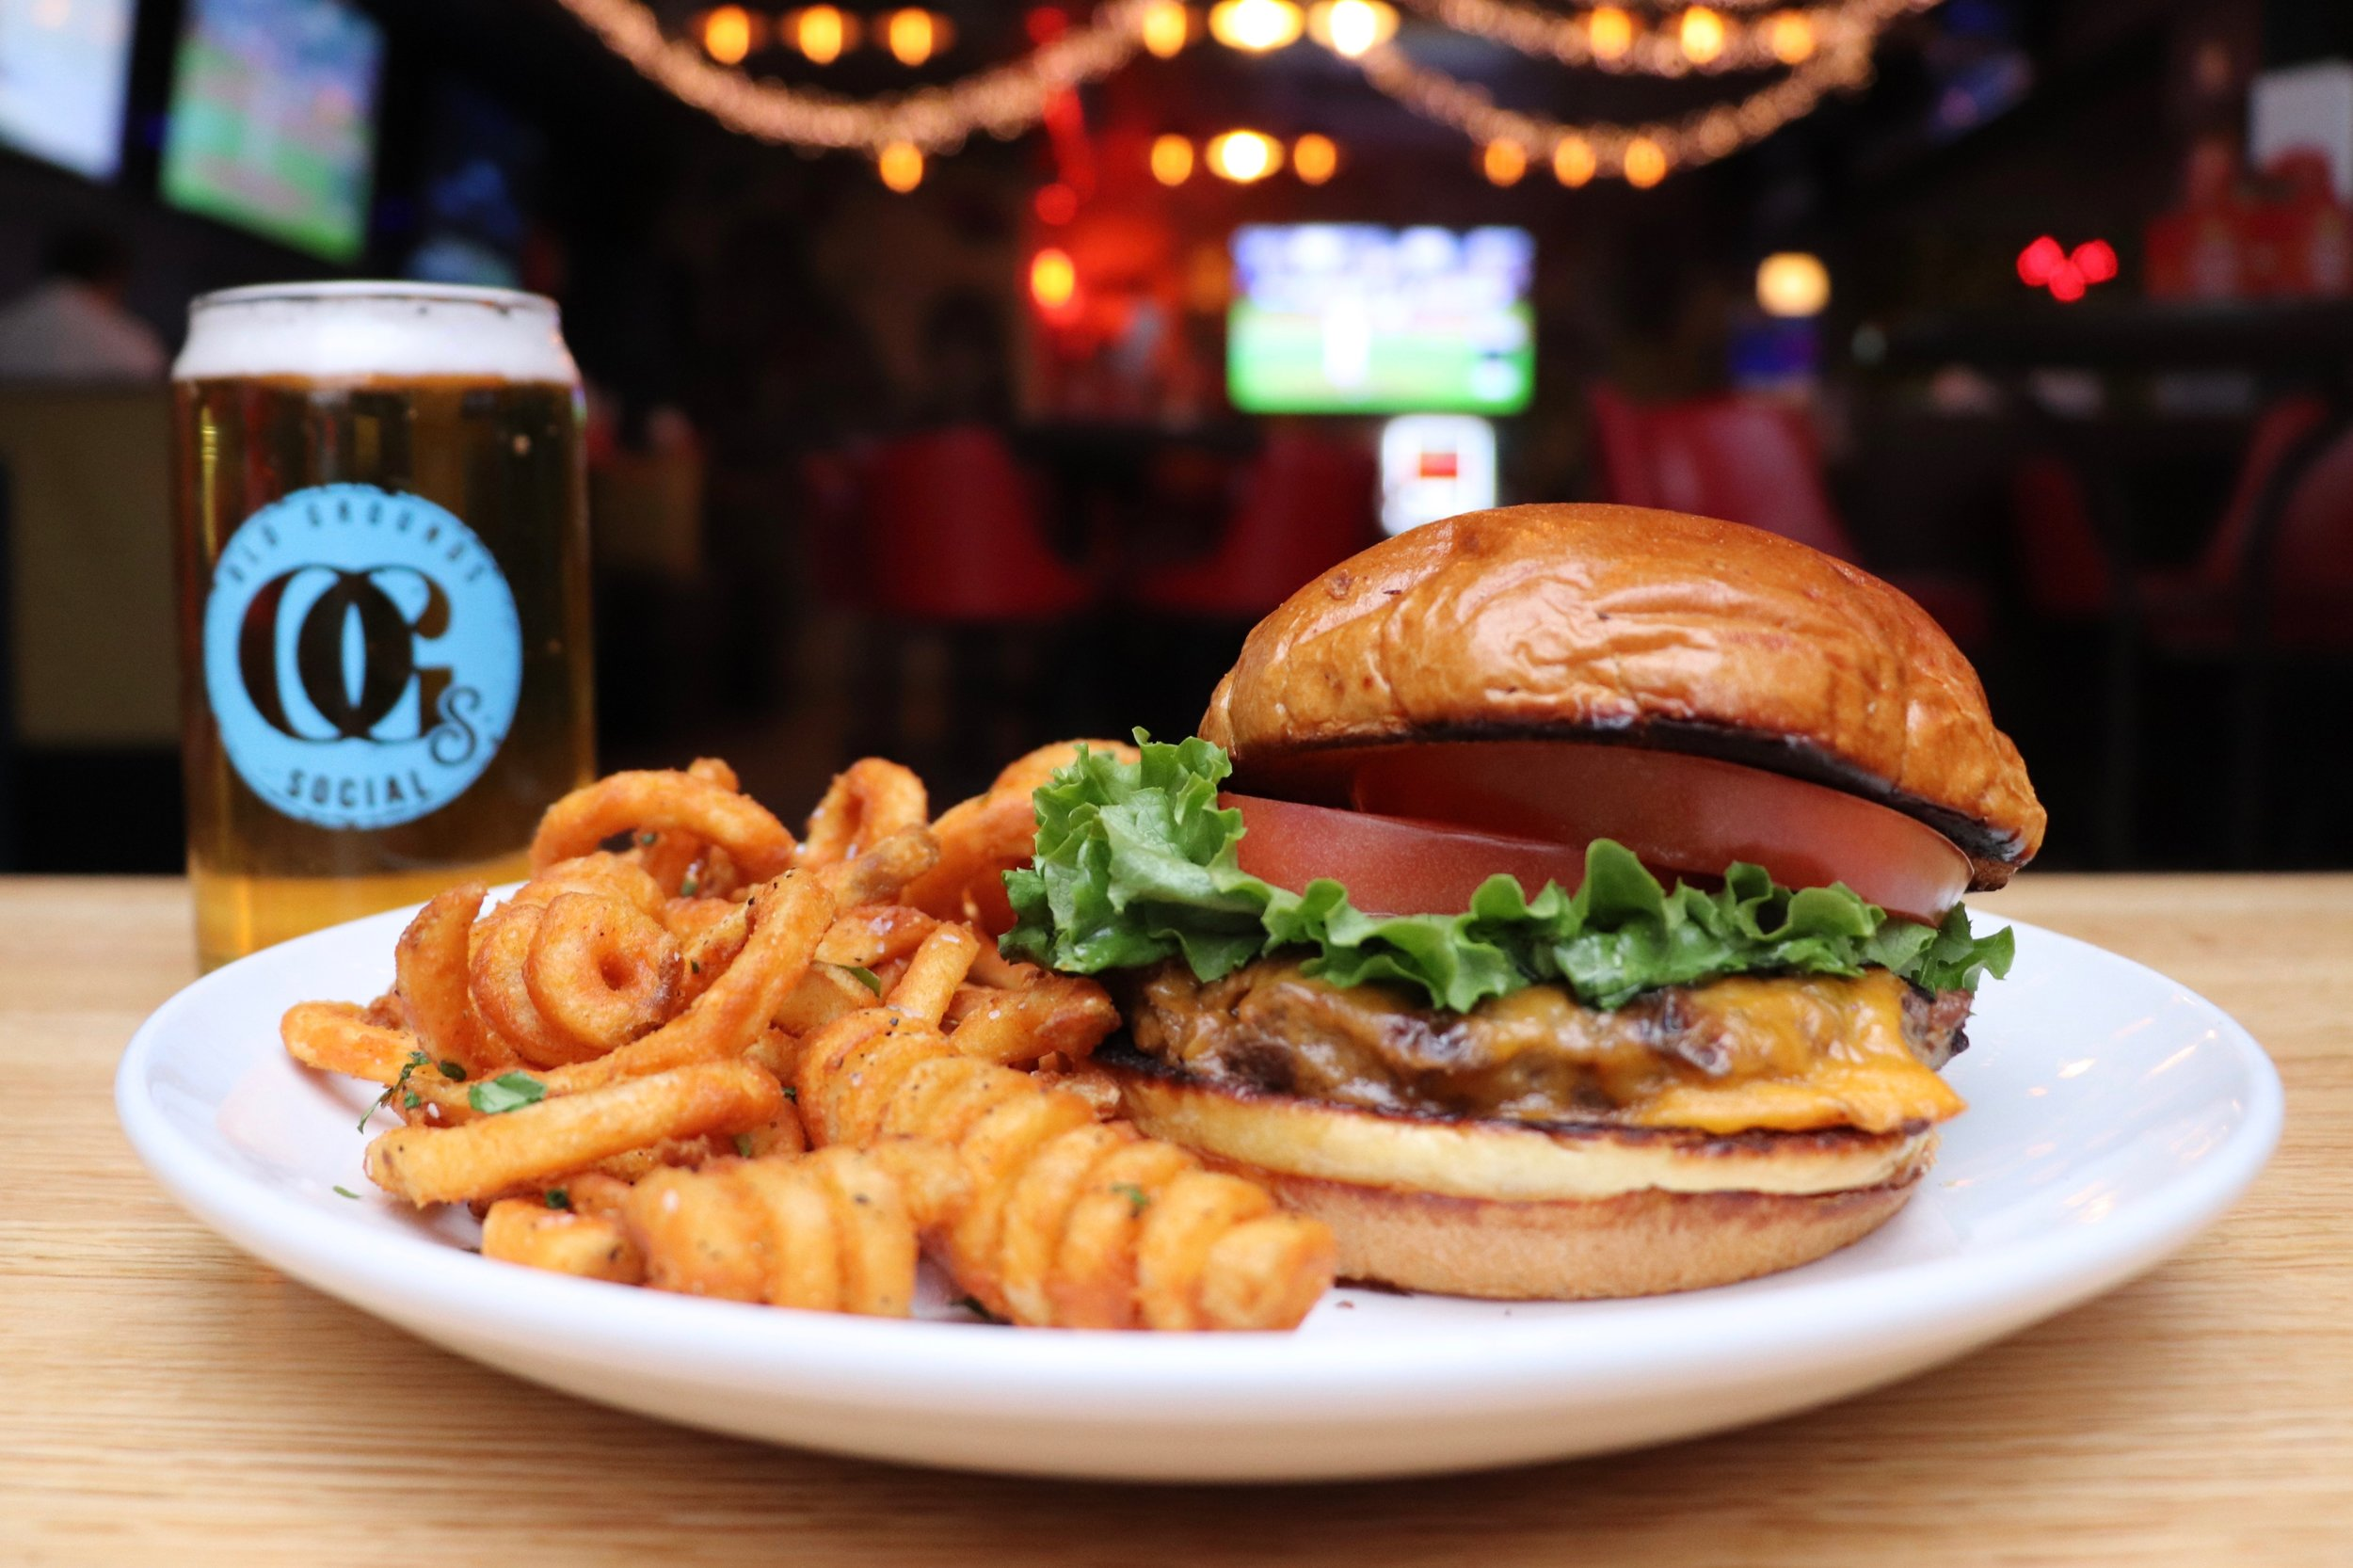 Friday Happy Hour - Burger + Fries + Bottomless Drafts or Wells - 4-7pm